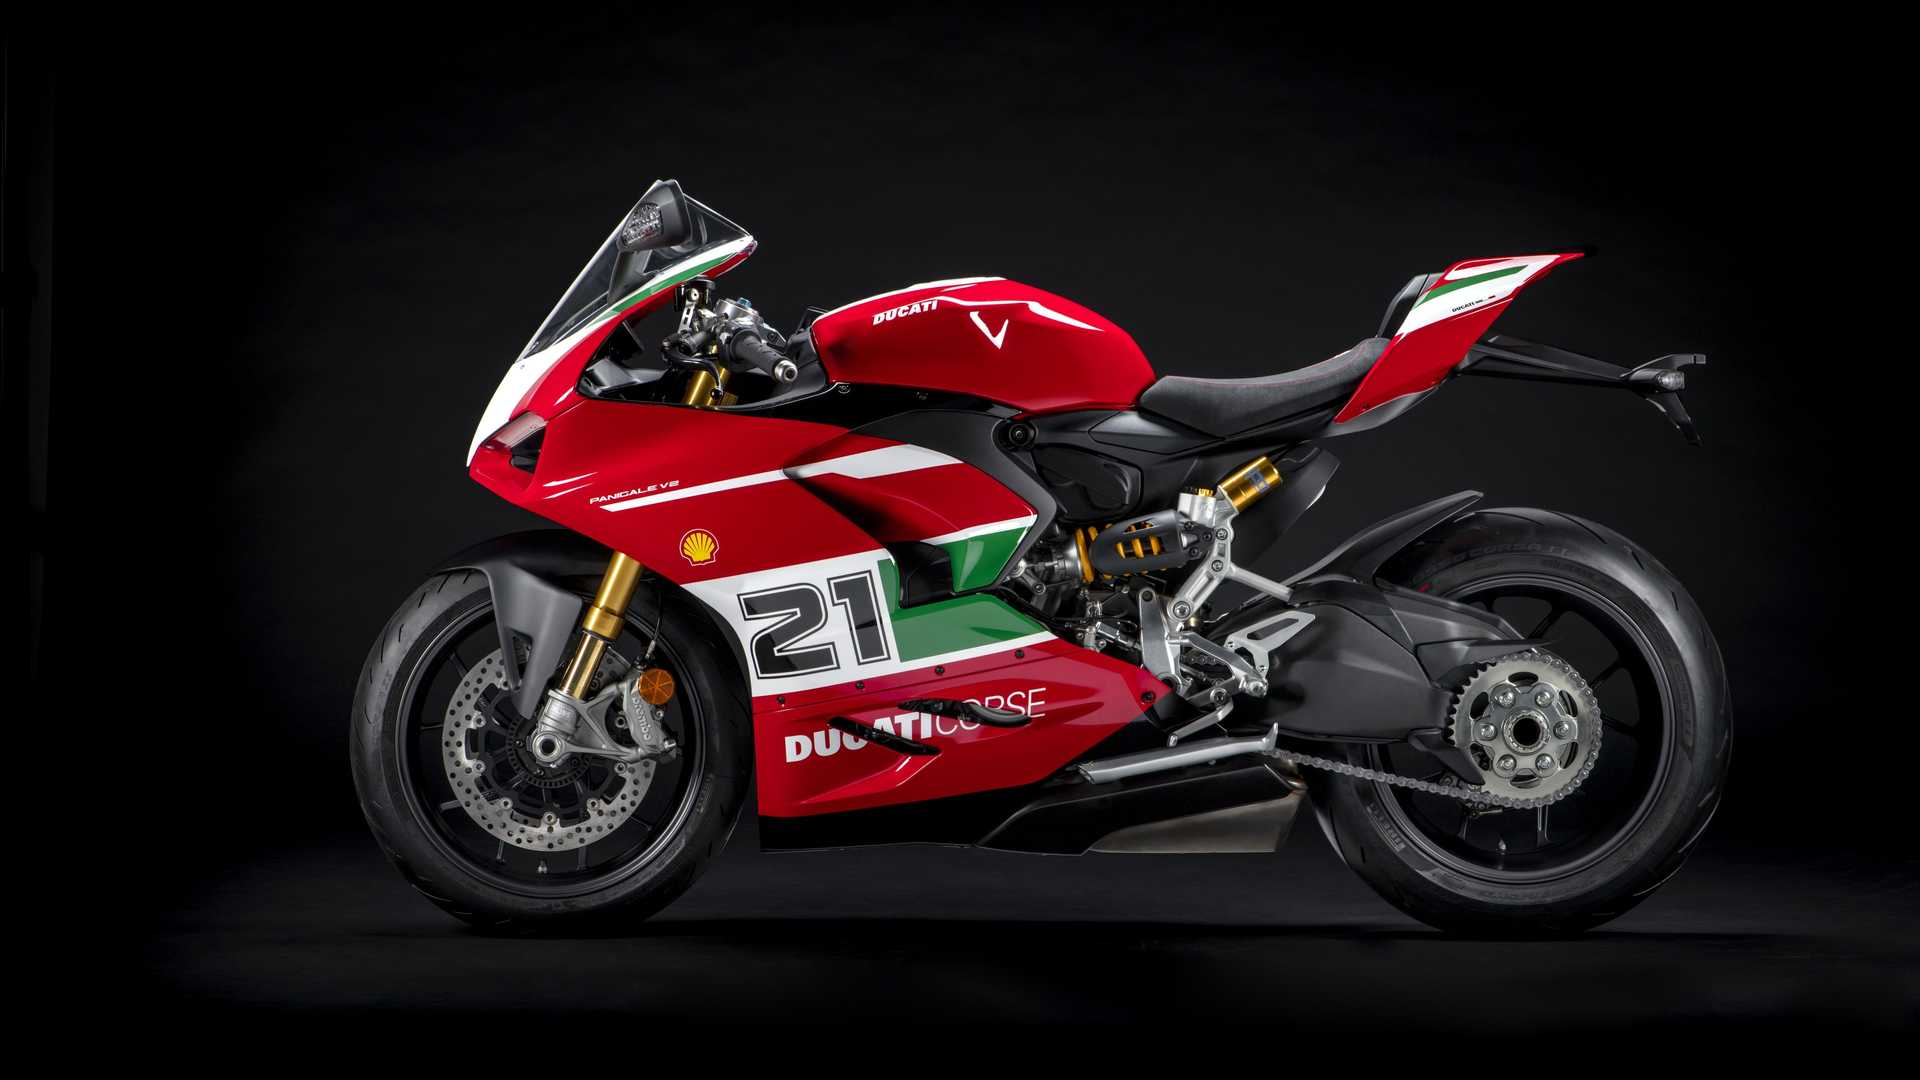 Ducati Panigale V2 Bayliss 1st Championship 20th Anniversary Edition - Left Side